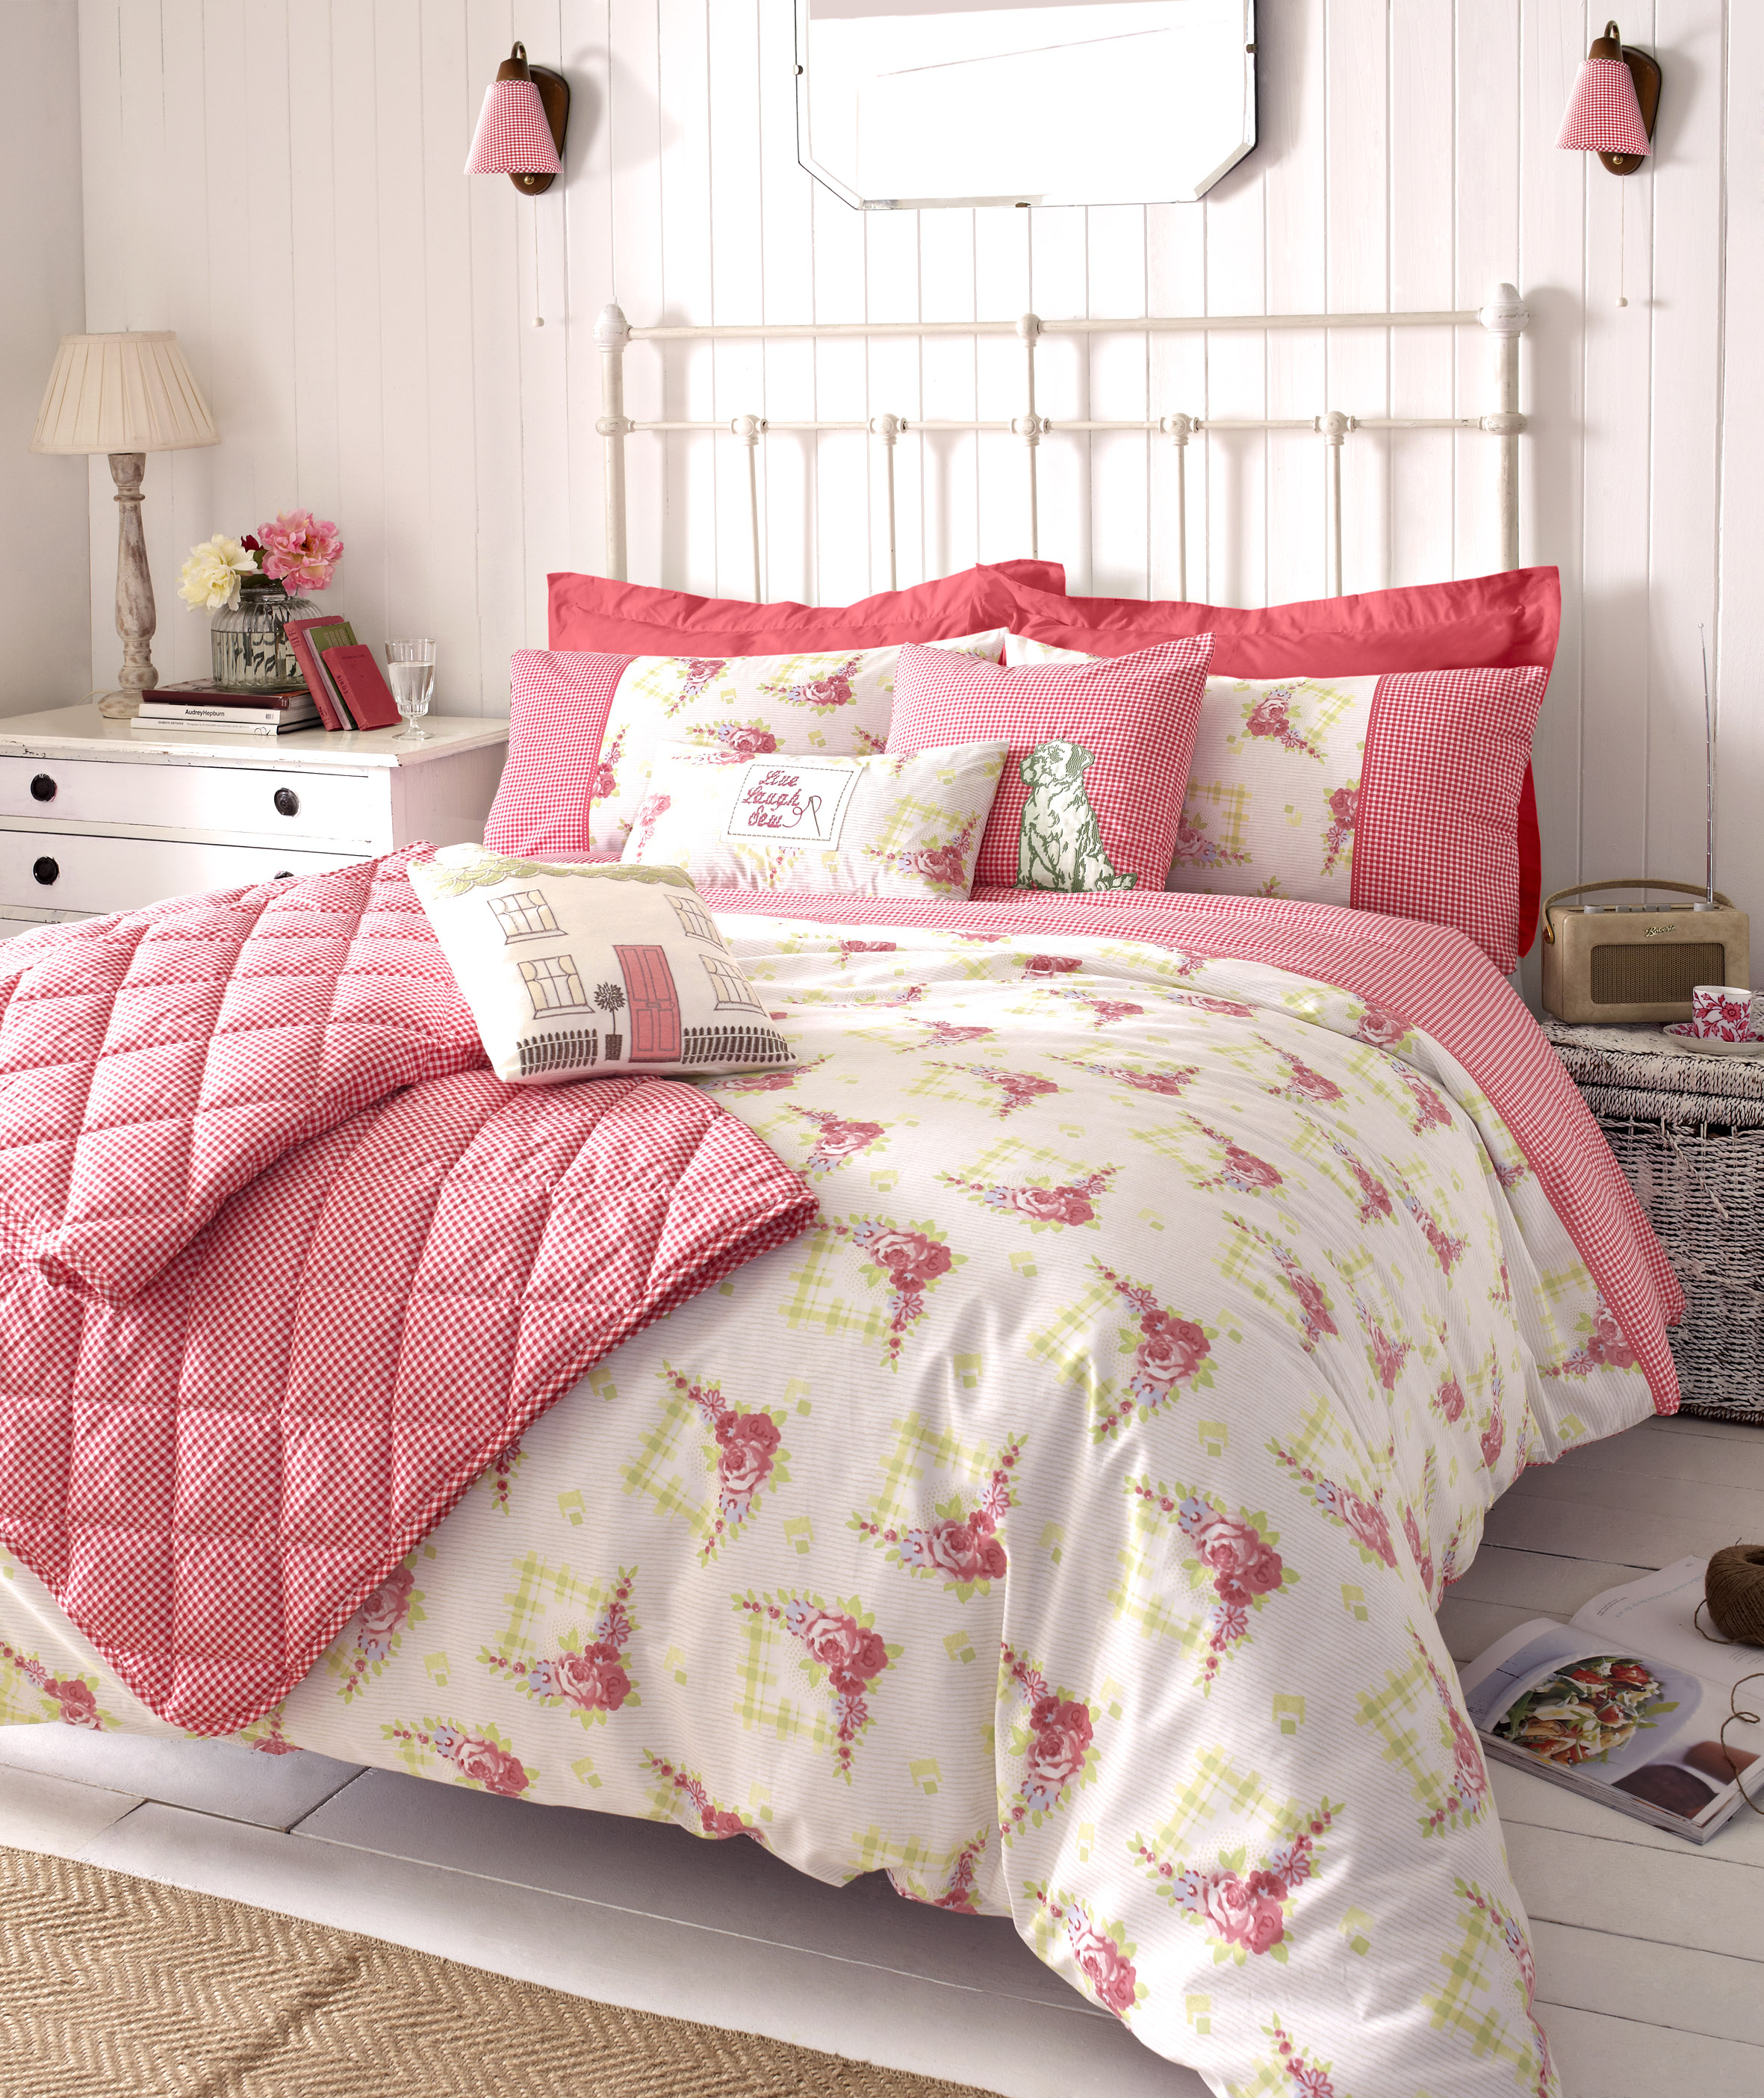 Shabby Chic Bedrooms: Must Have Essentials In Bedroom